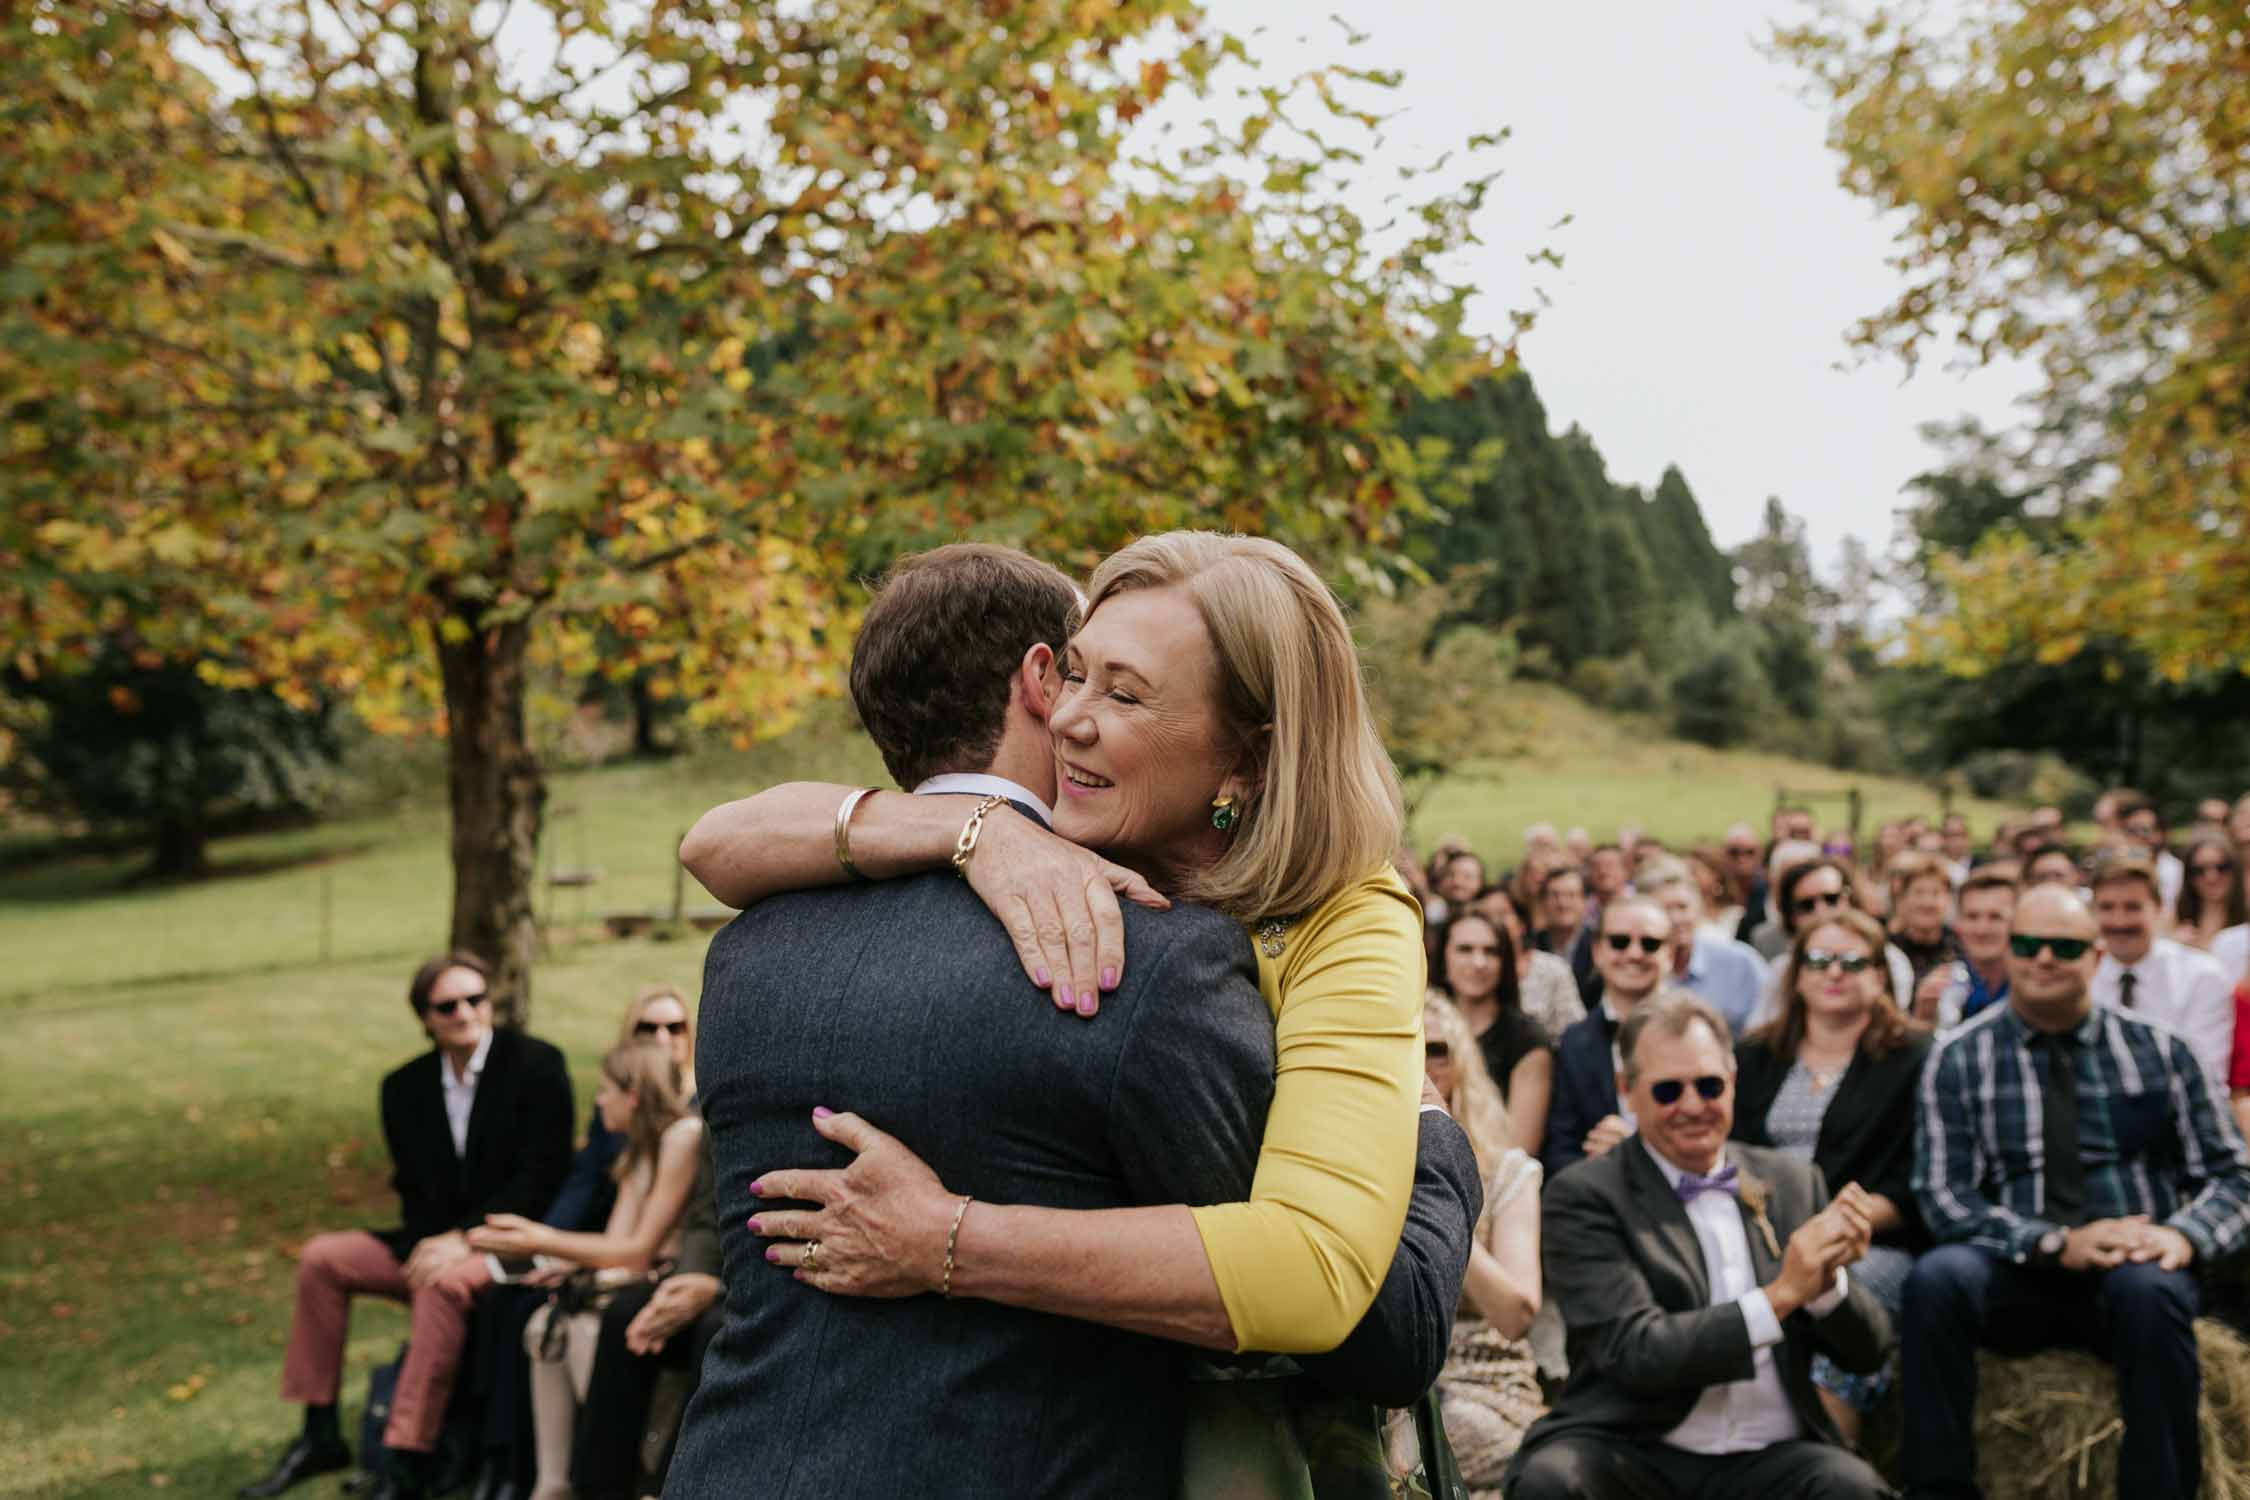 Bride's mother wearing yellow top hugging groom warmly before bride walks down the aisle. Real and emotional moment.